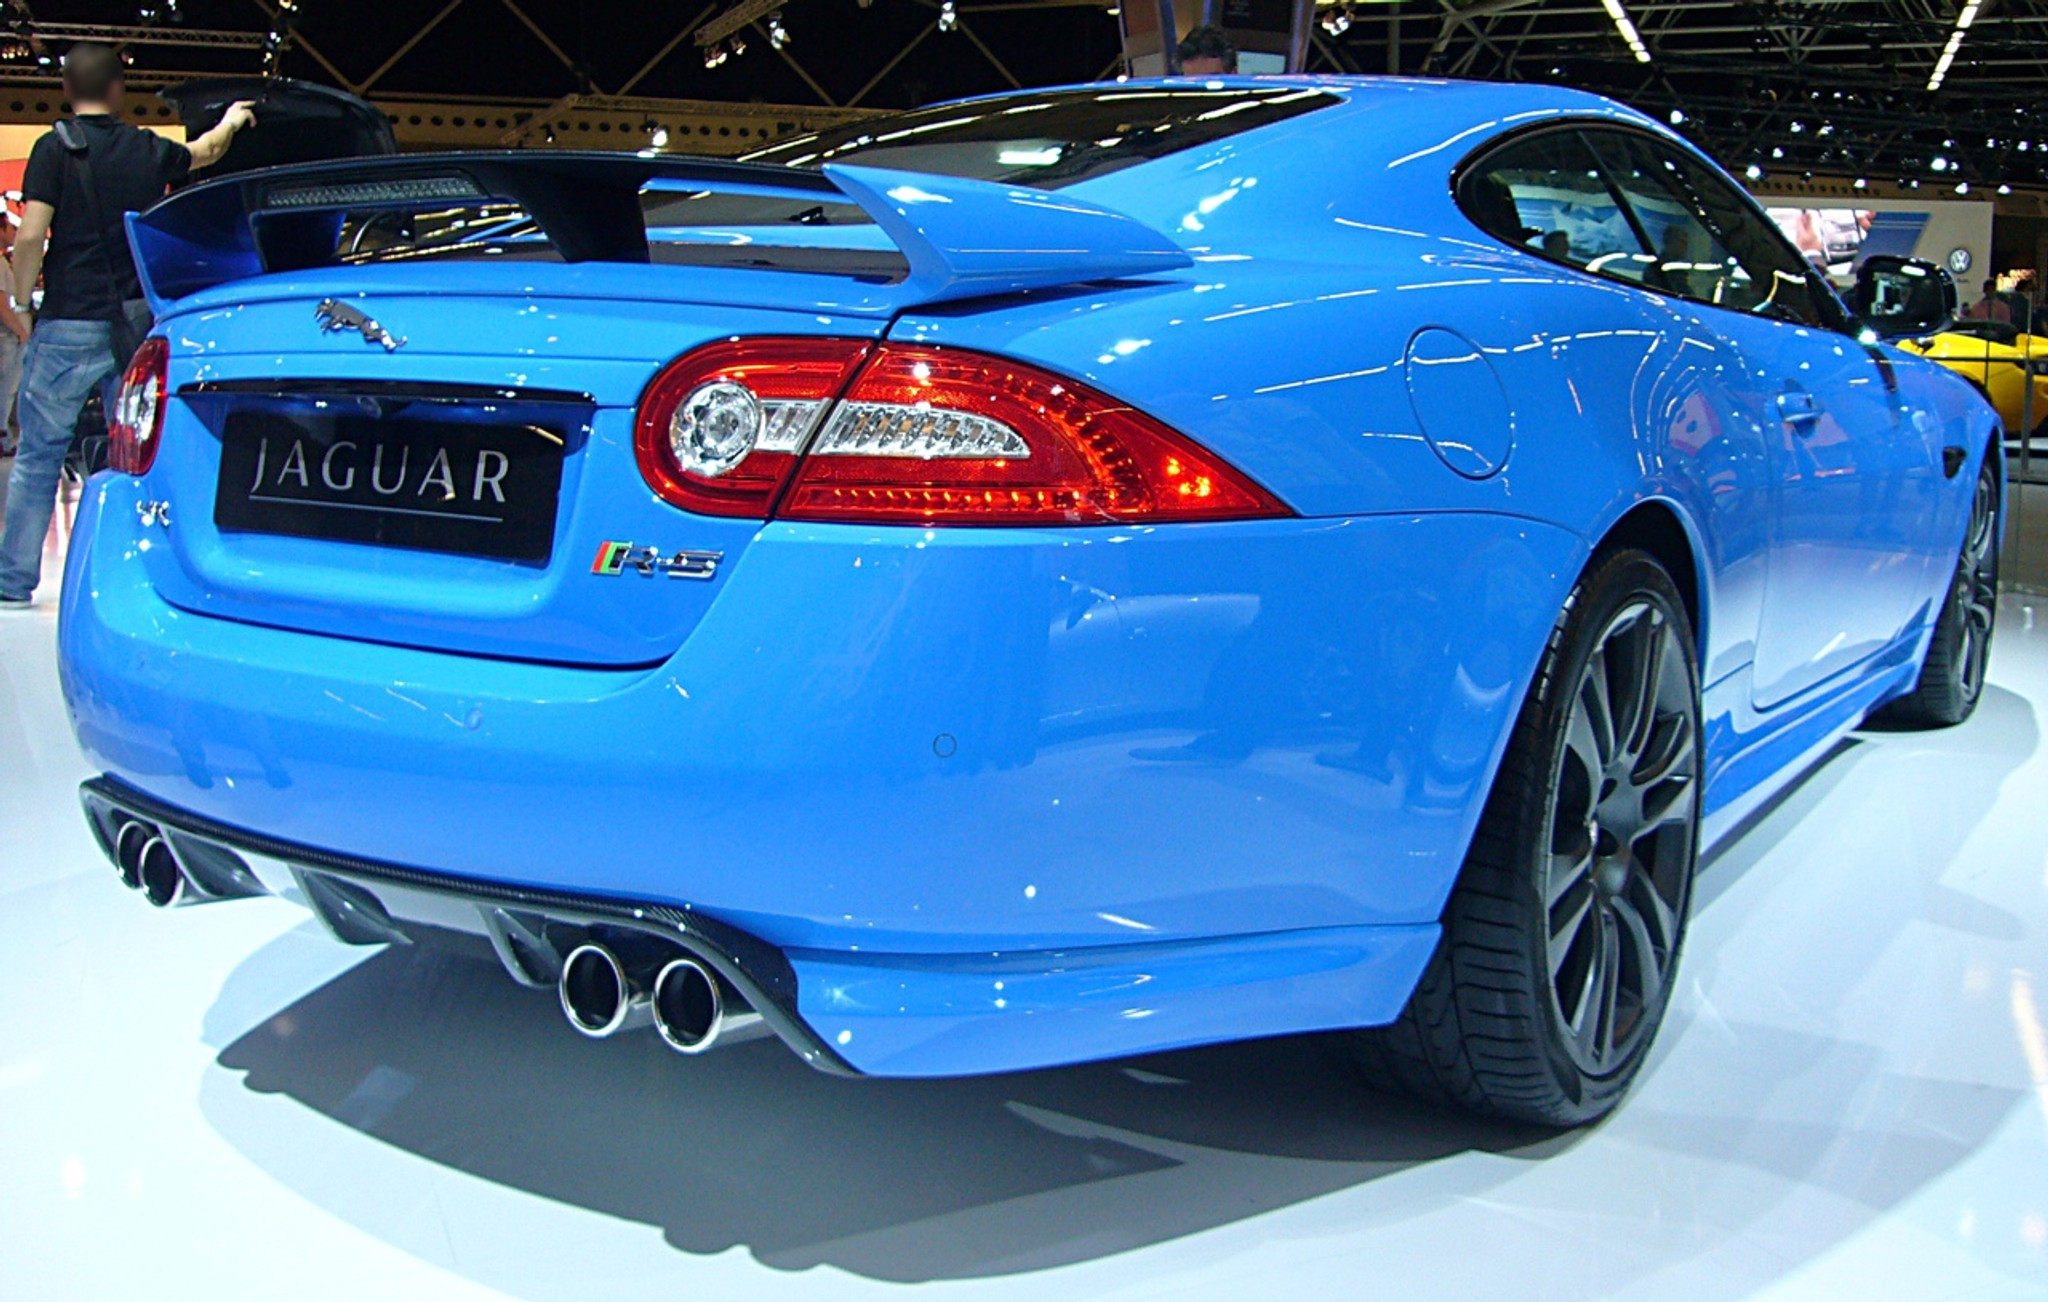 Jaguar XKR-S Coupe Body kit Conversion